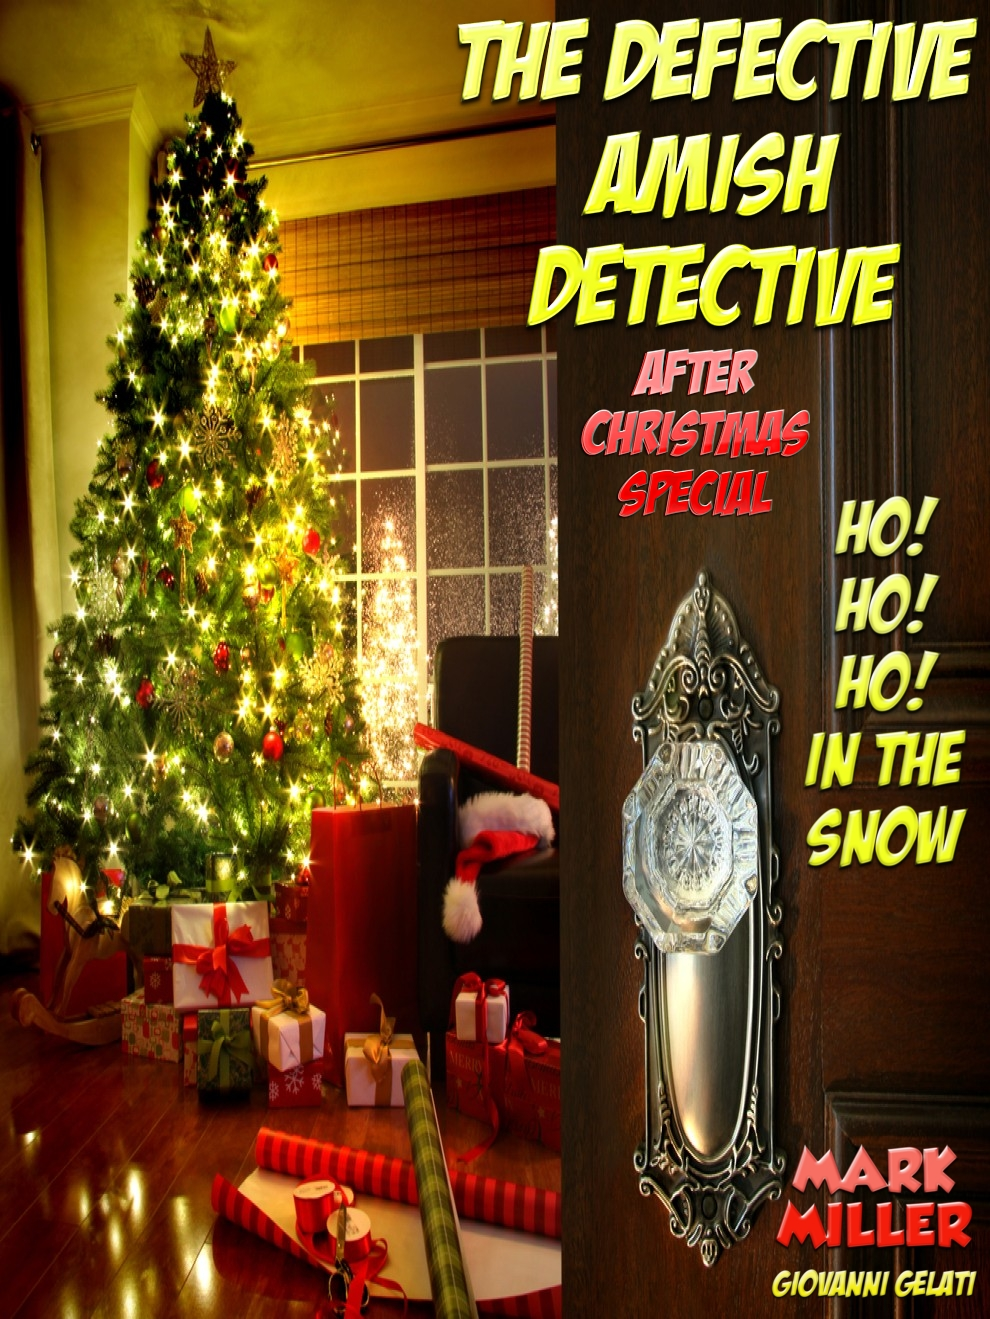 The Defective Amish Detective - After Christmas Special - H0! Ho! Ho! In The Snow!